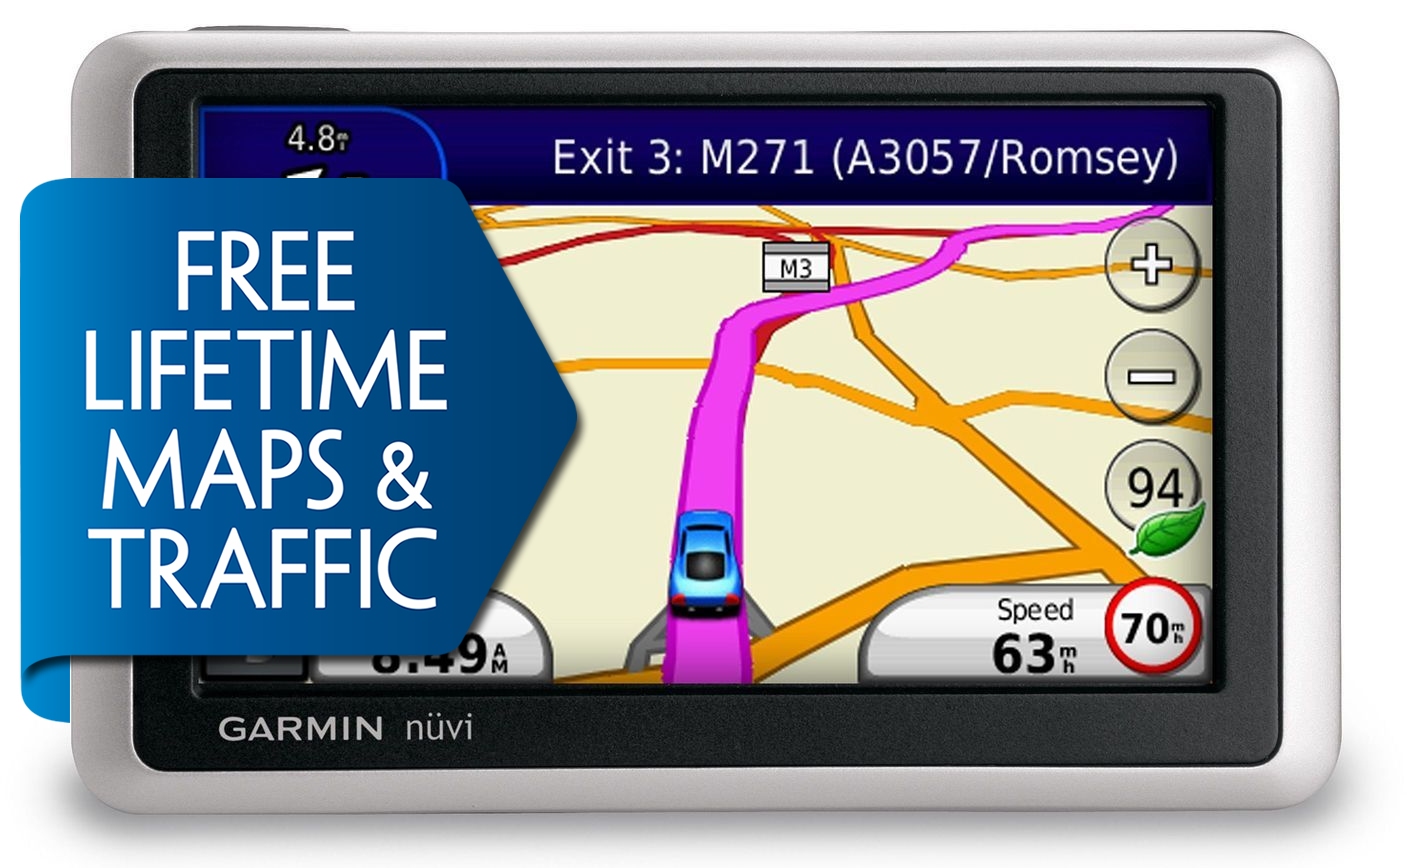 Best Free Sat Nav For Iphone Garmin Nuvi 1340lmt Gps Satnav 43 Free Lifetime Europe Map